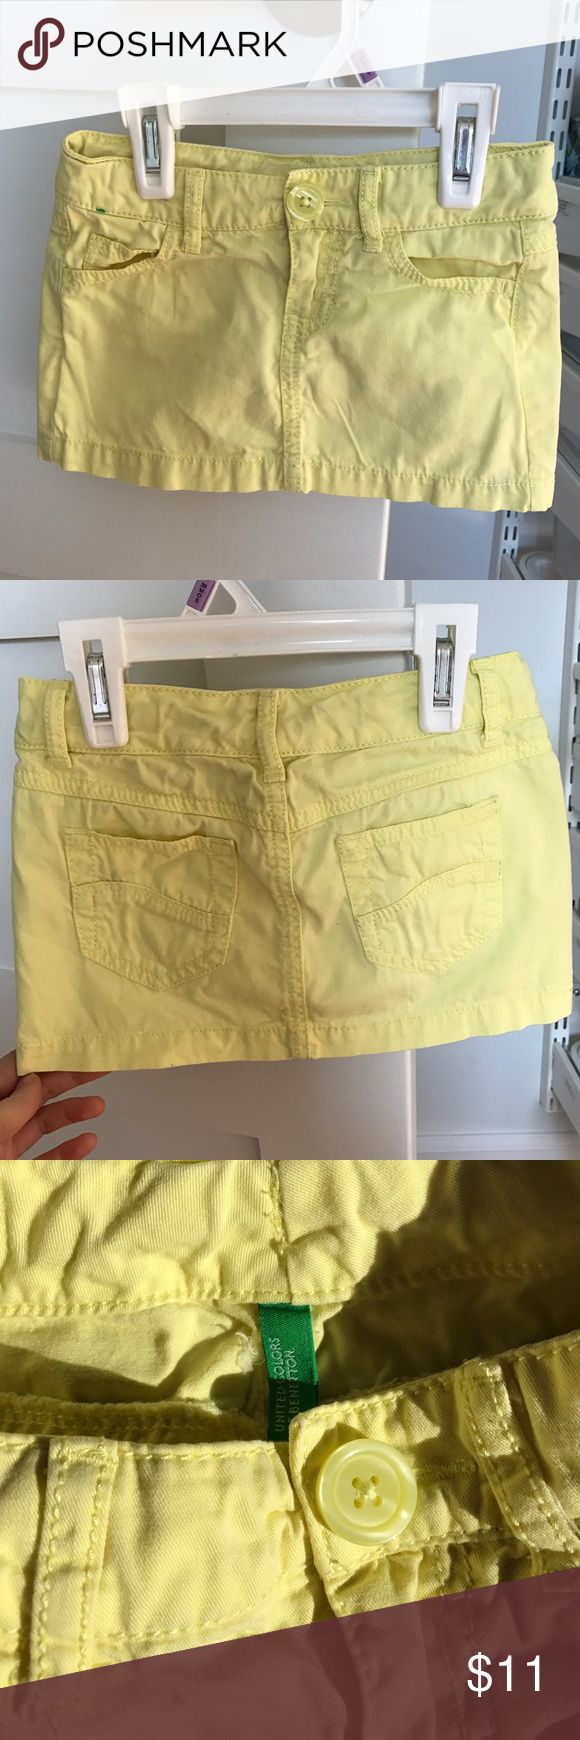 Toddler Girl Mini Skirt from Benetton In a good used condition. Size 2T. If you have any questions please comment below United Colors Of Benetton Bottoms Skirts